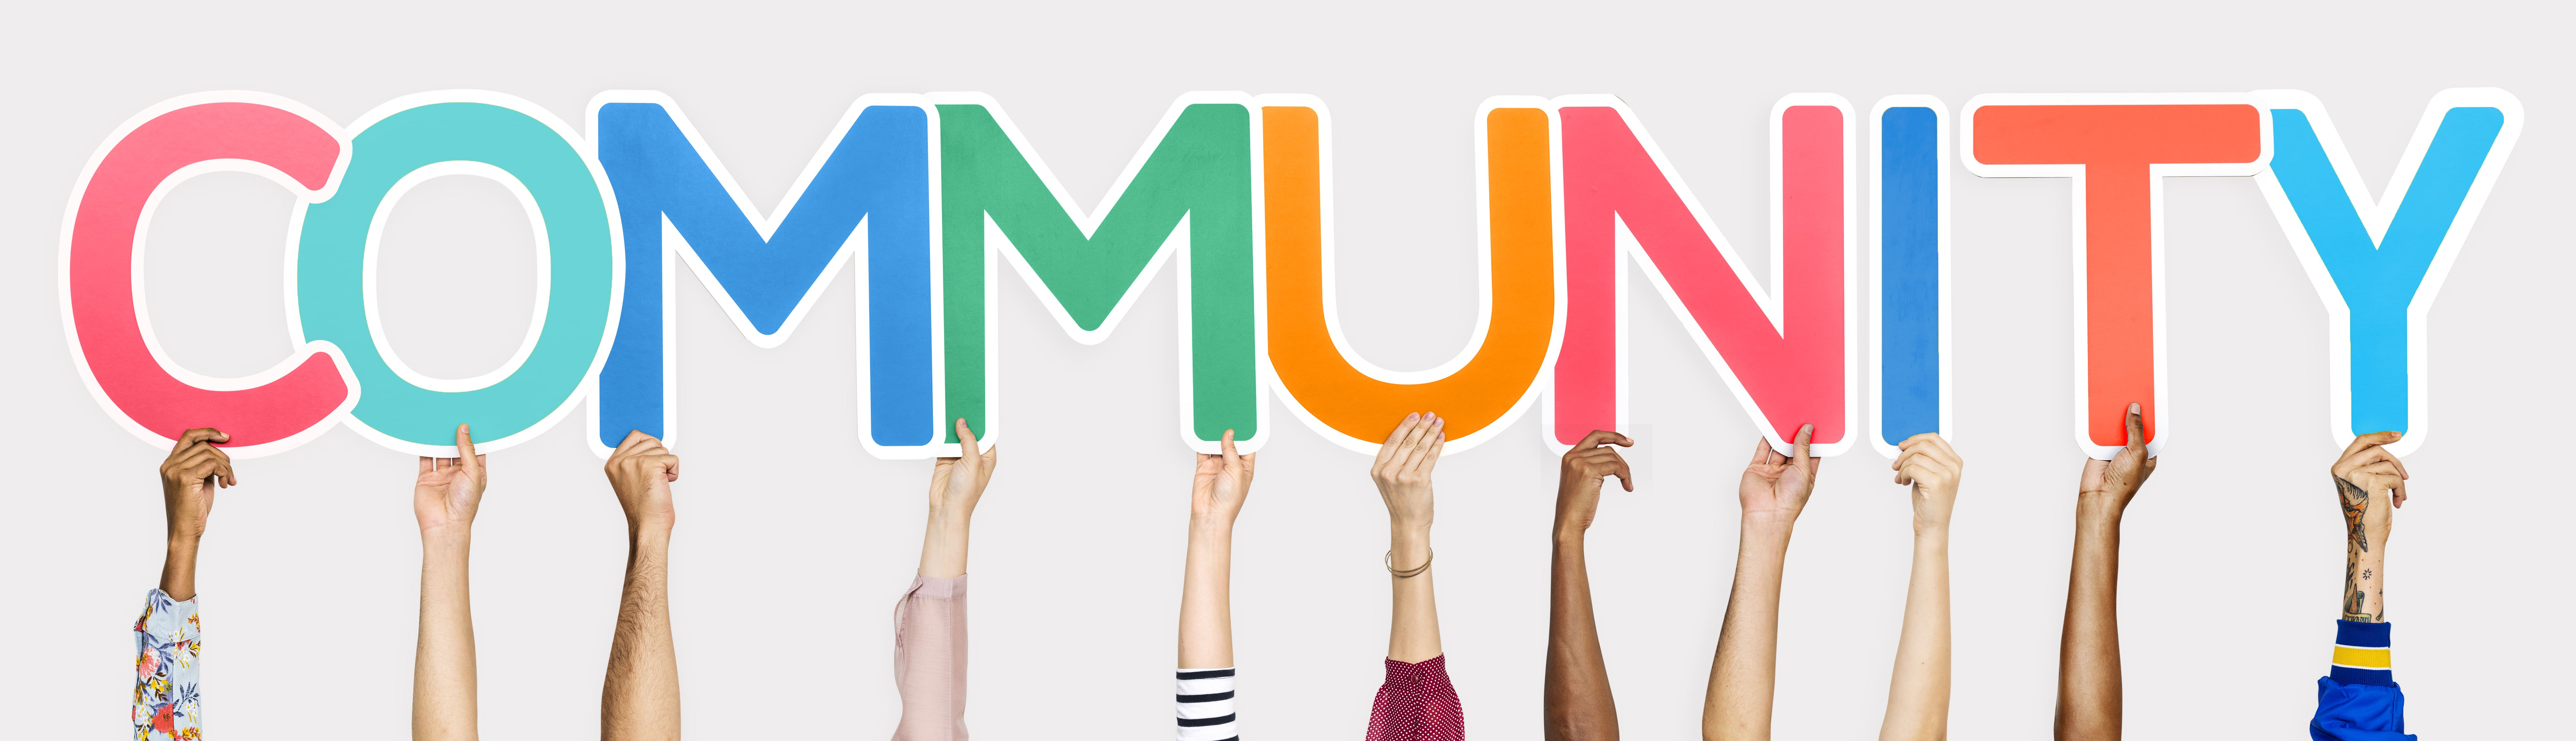 """Image of Hands holding letters that spell """"Community"""""""